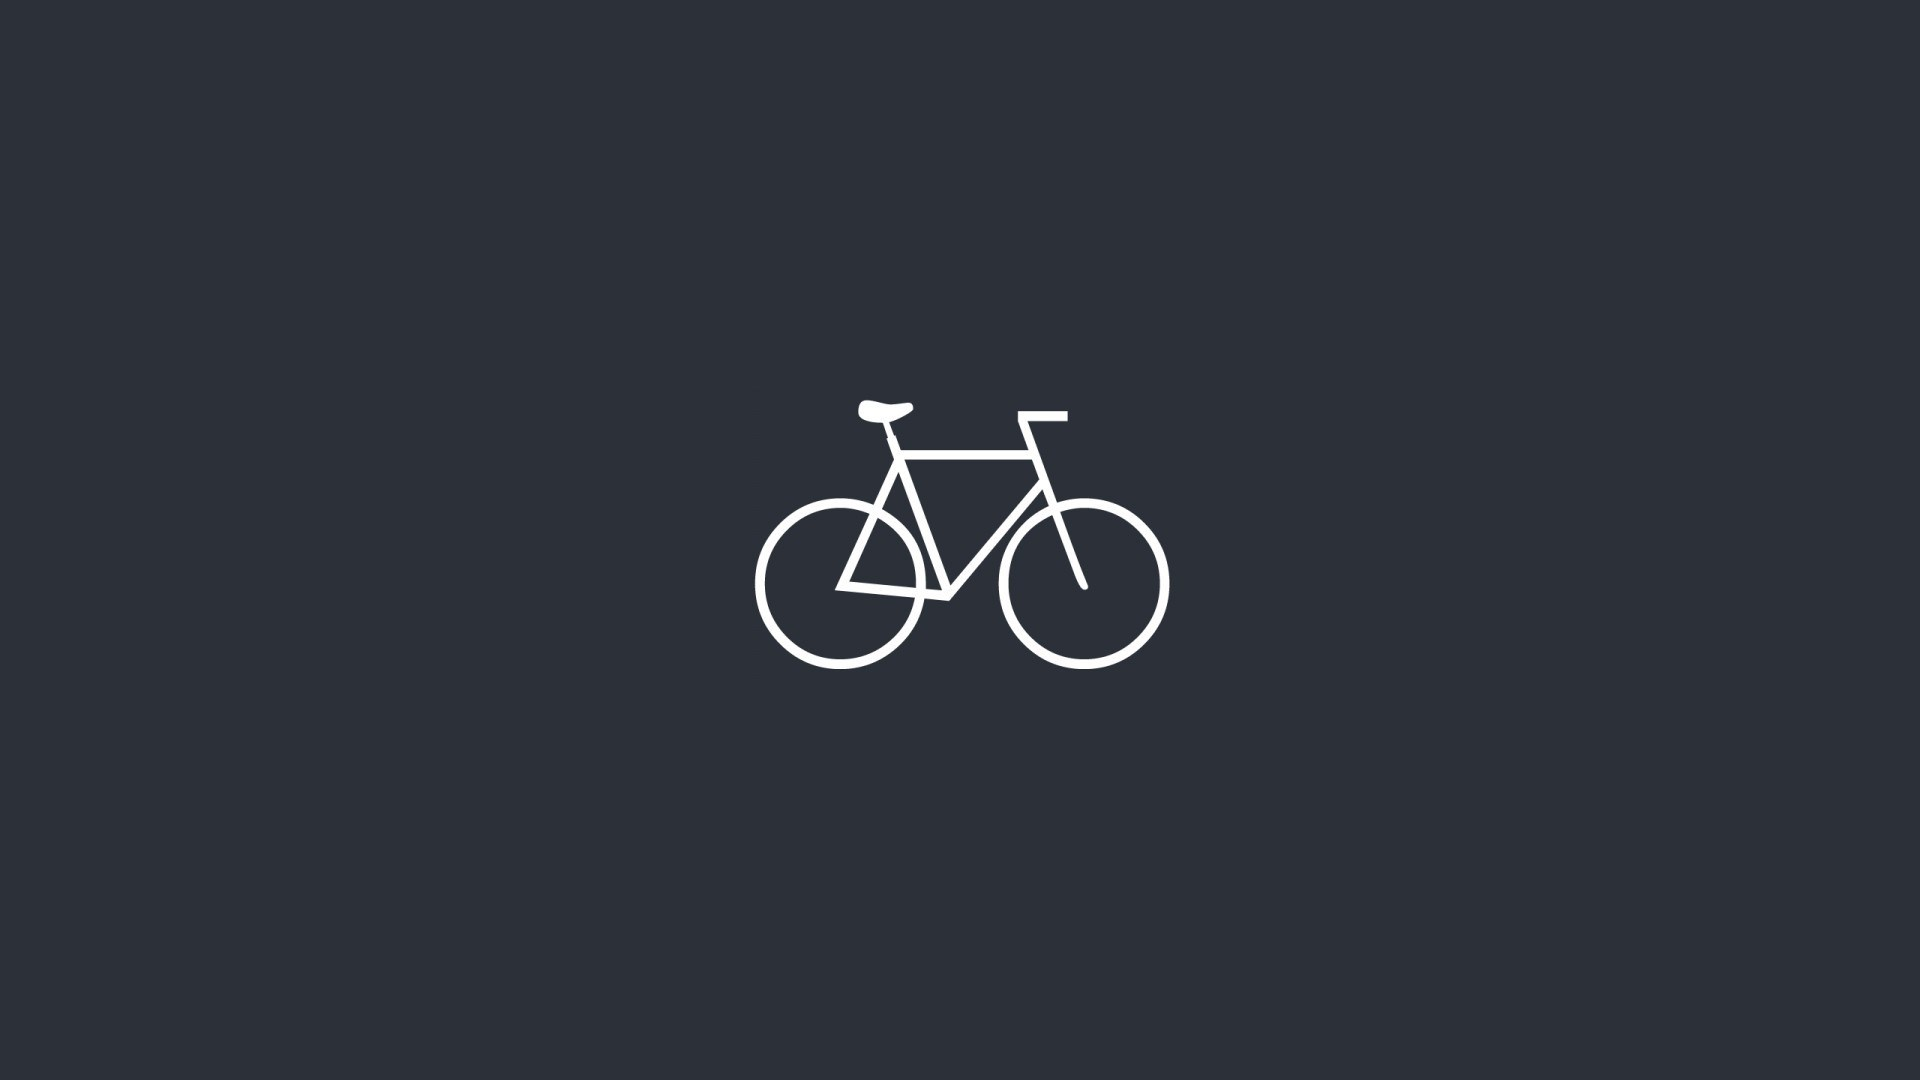 Bicycle Minimalistic Art HD Wallpaper